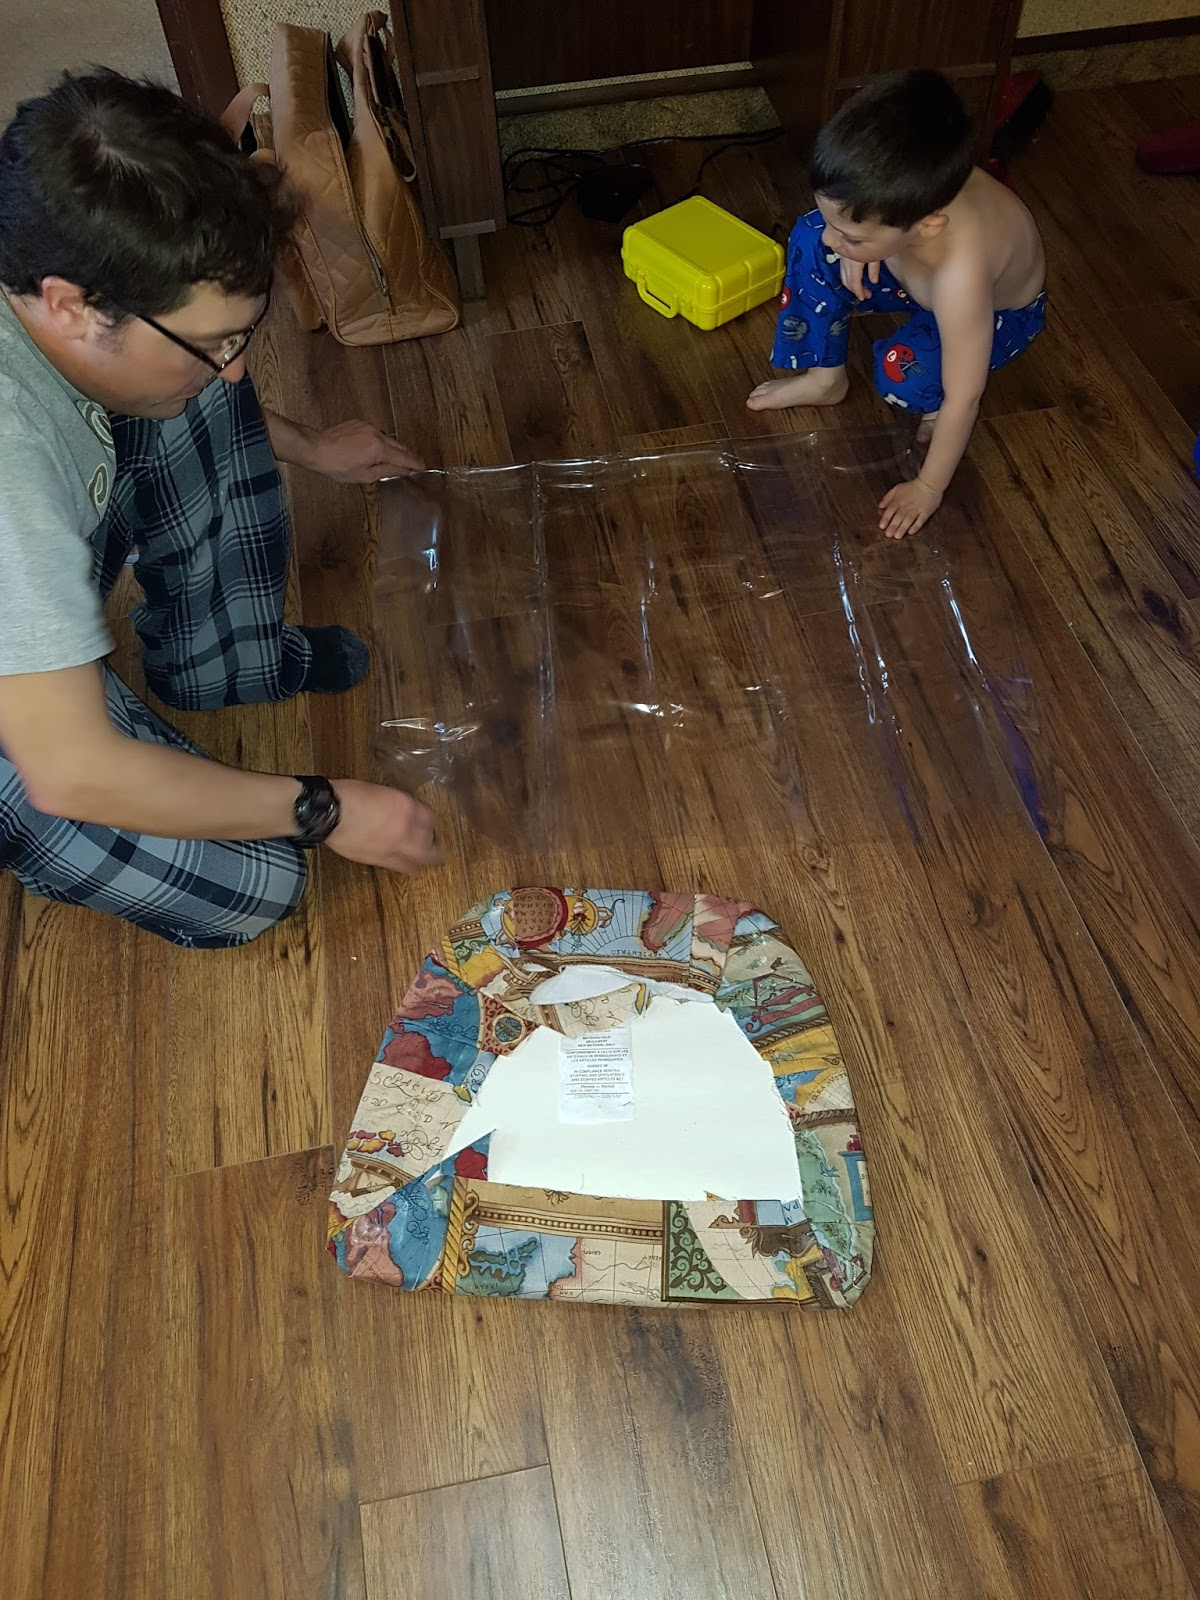 Family Buzz: Covering kitchen chairs in clear plastic